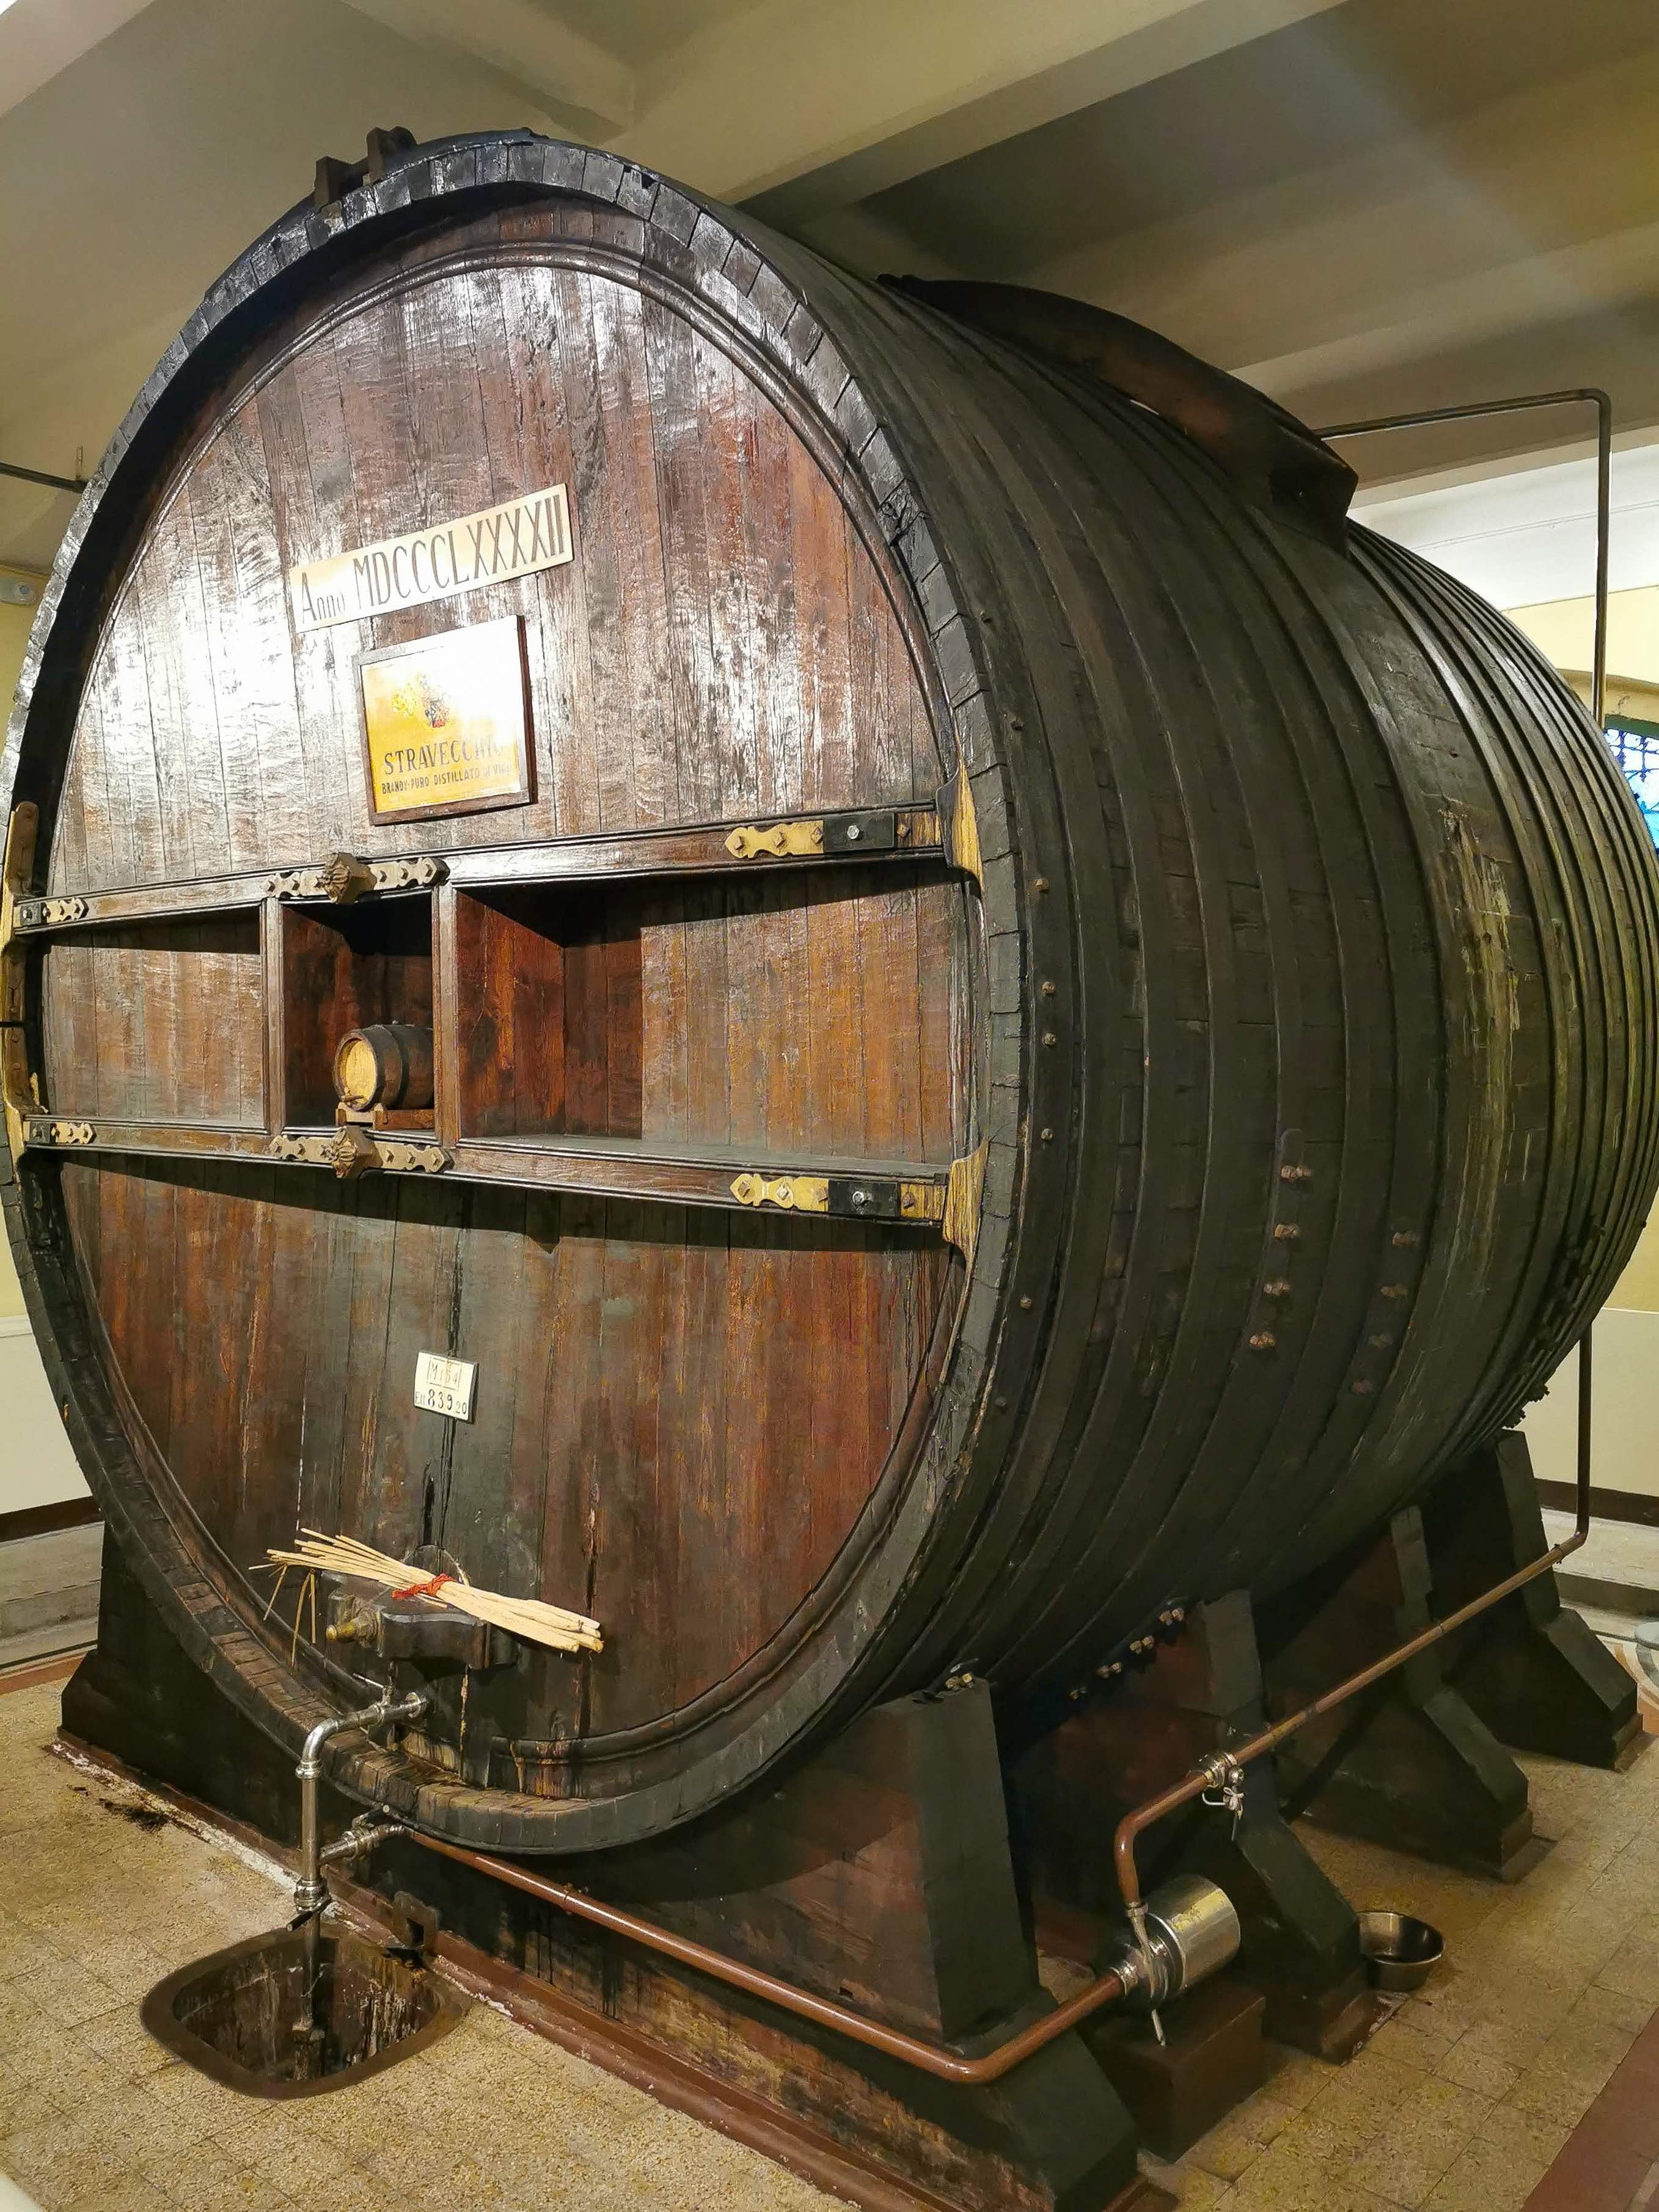 The mother barrel at the Branca museum in Milan